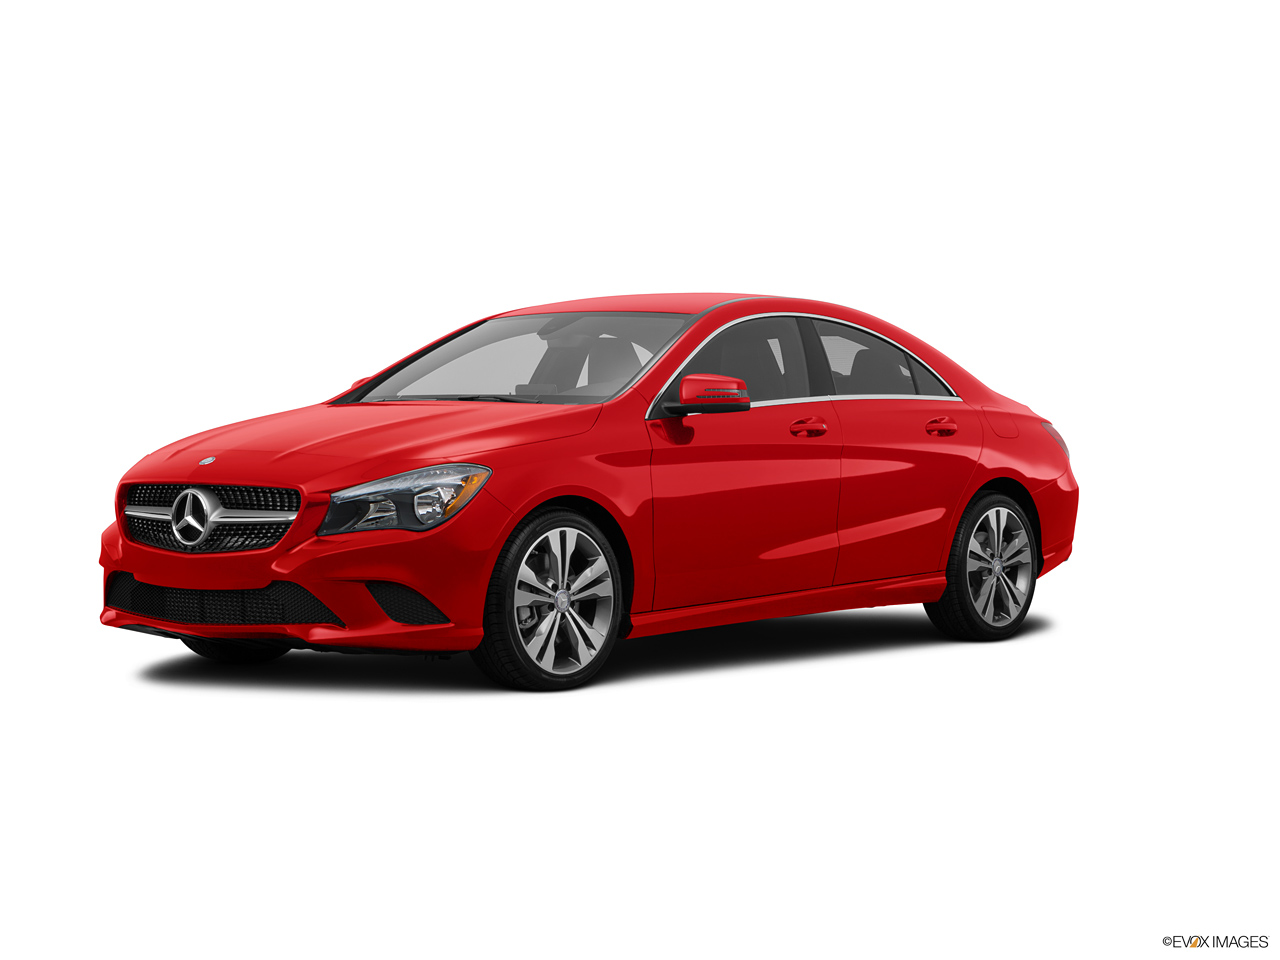 2015 mercedes benz cla class 27 cool hd wallpaper for 2015 mercedes benz cla class